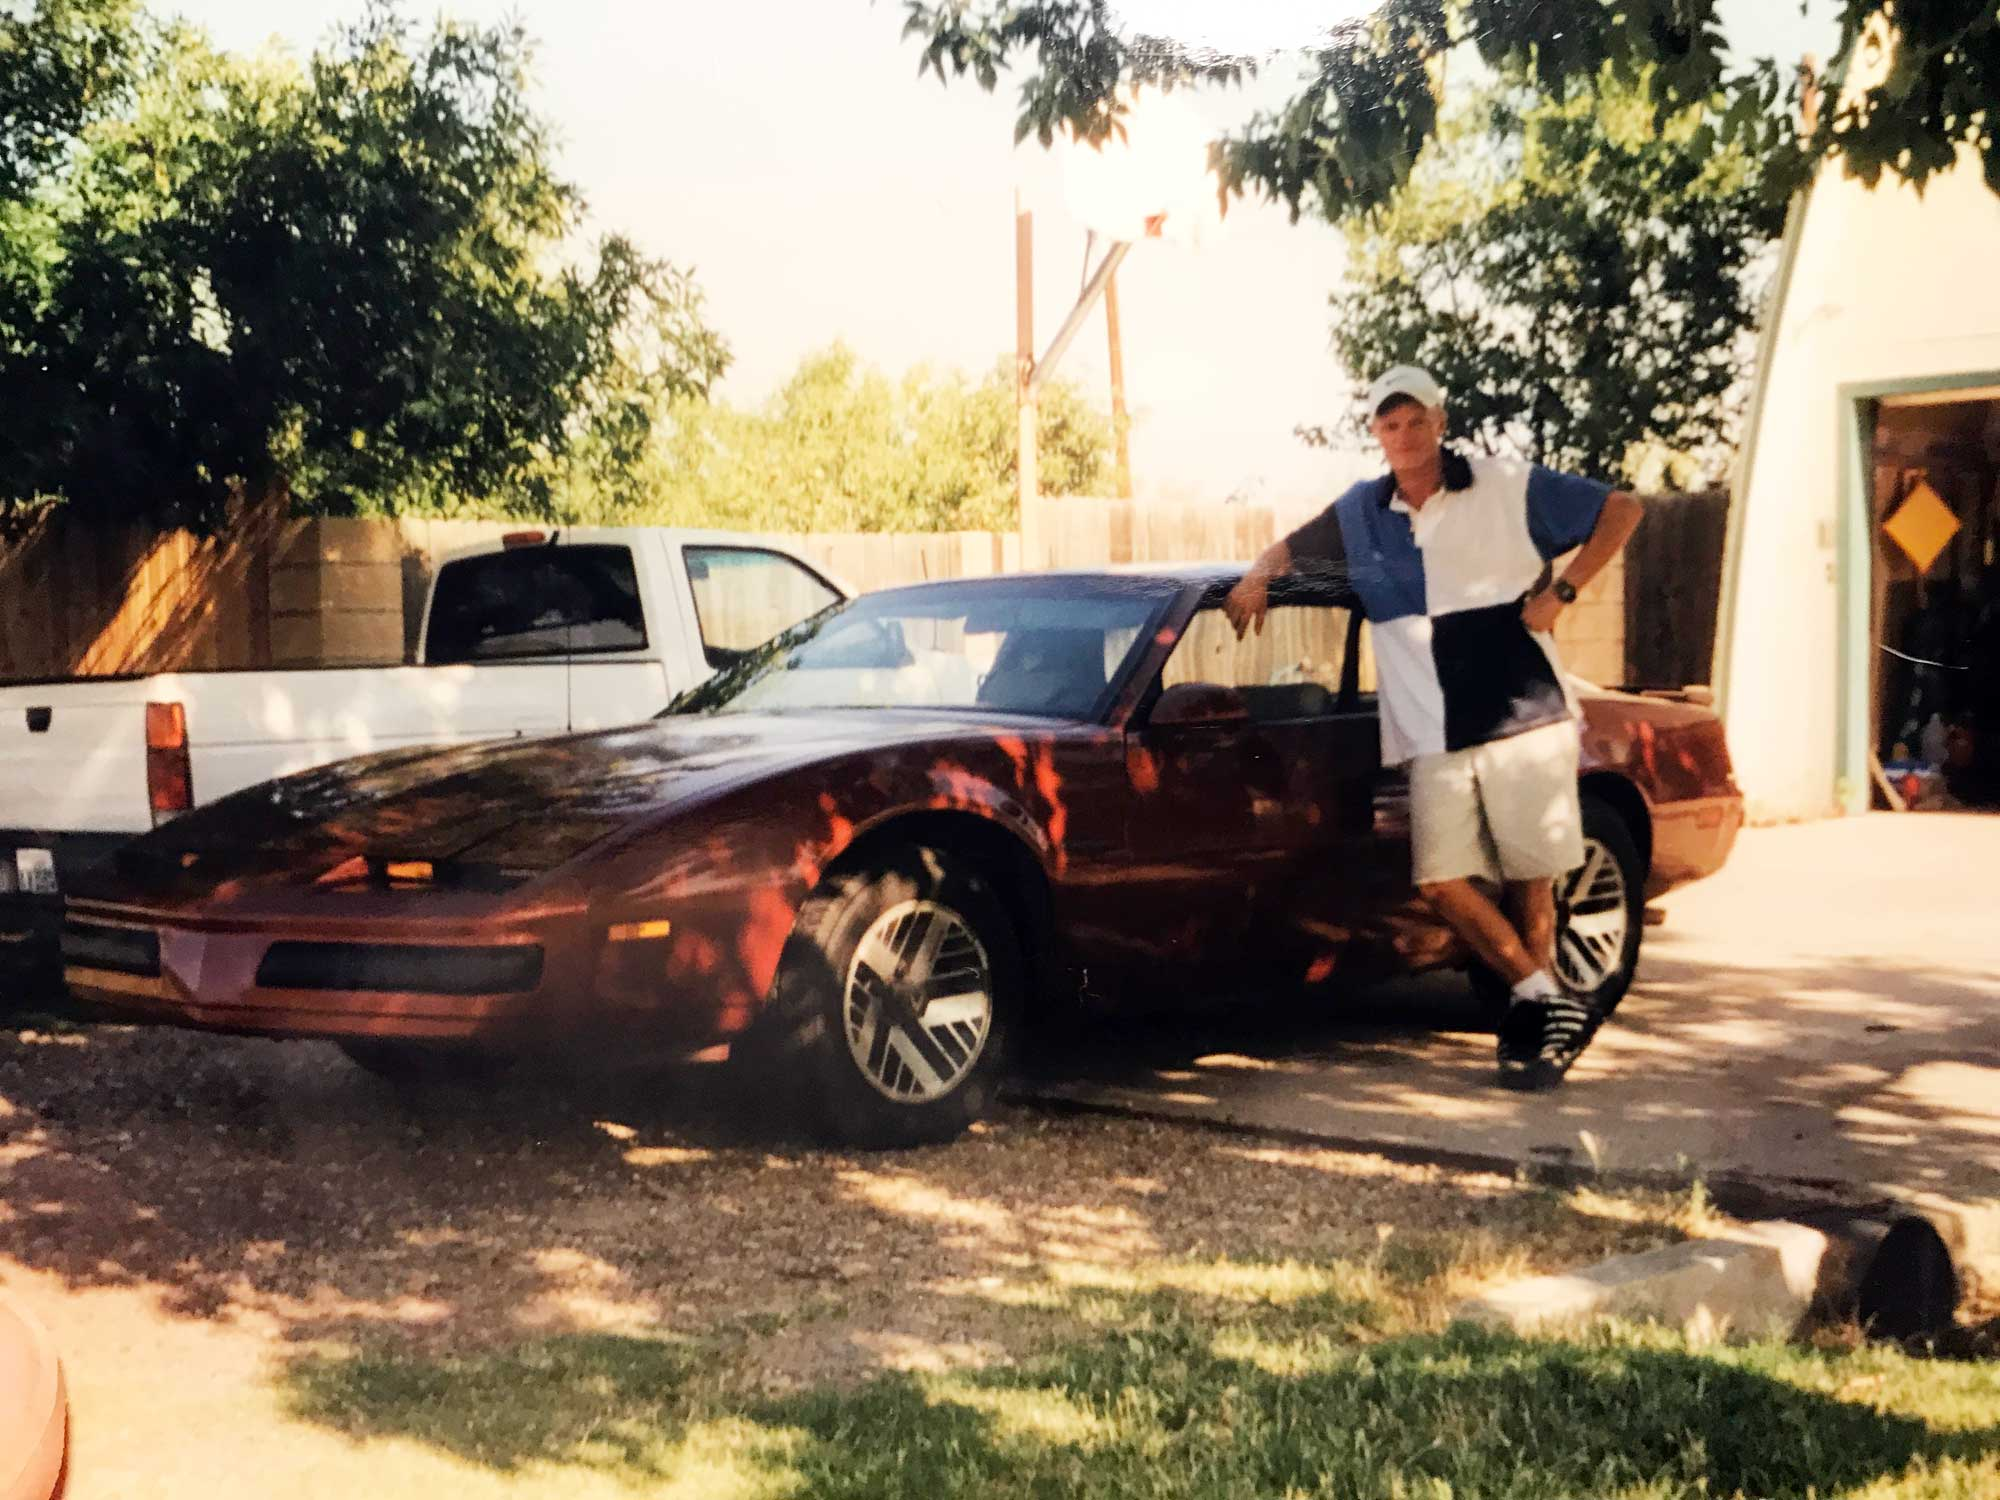 Pontiac Firebird 1989 - Screw Them All - Blog